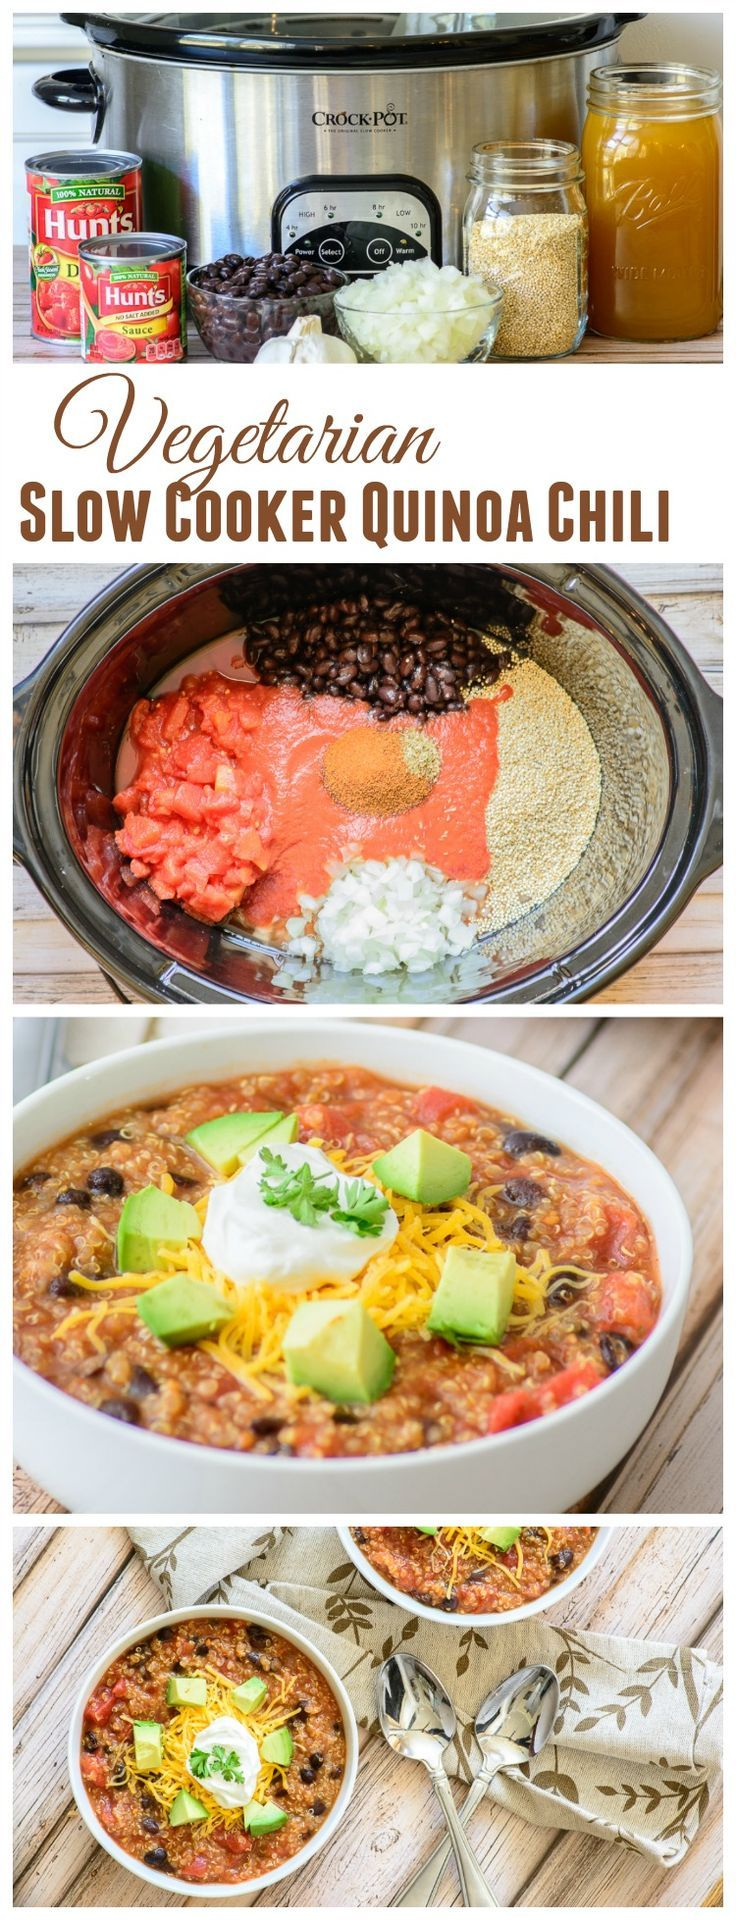 Thick and Hearty Vegetarian Slow Cooker Chili Recipe. Perfect for crisp fall evenings. No prep time needed, just throw the ingredients in you slow cooker and cook on low for 5 hours. So easy!!